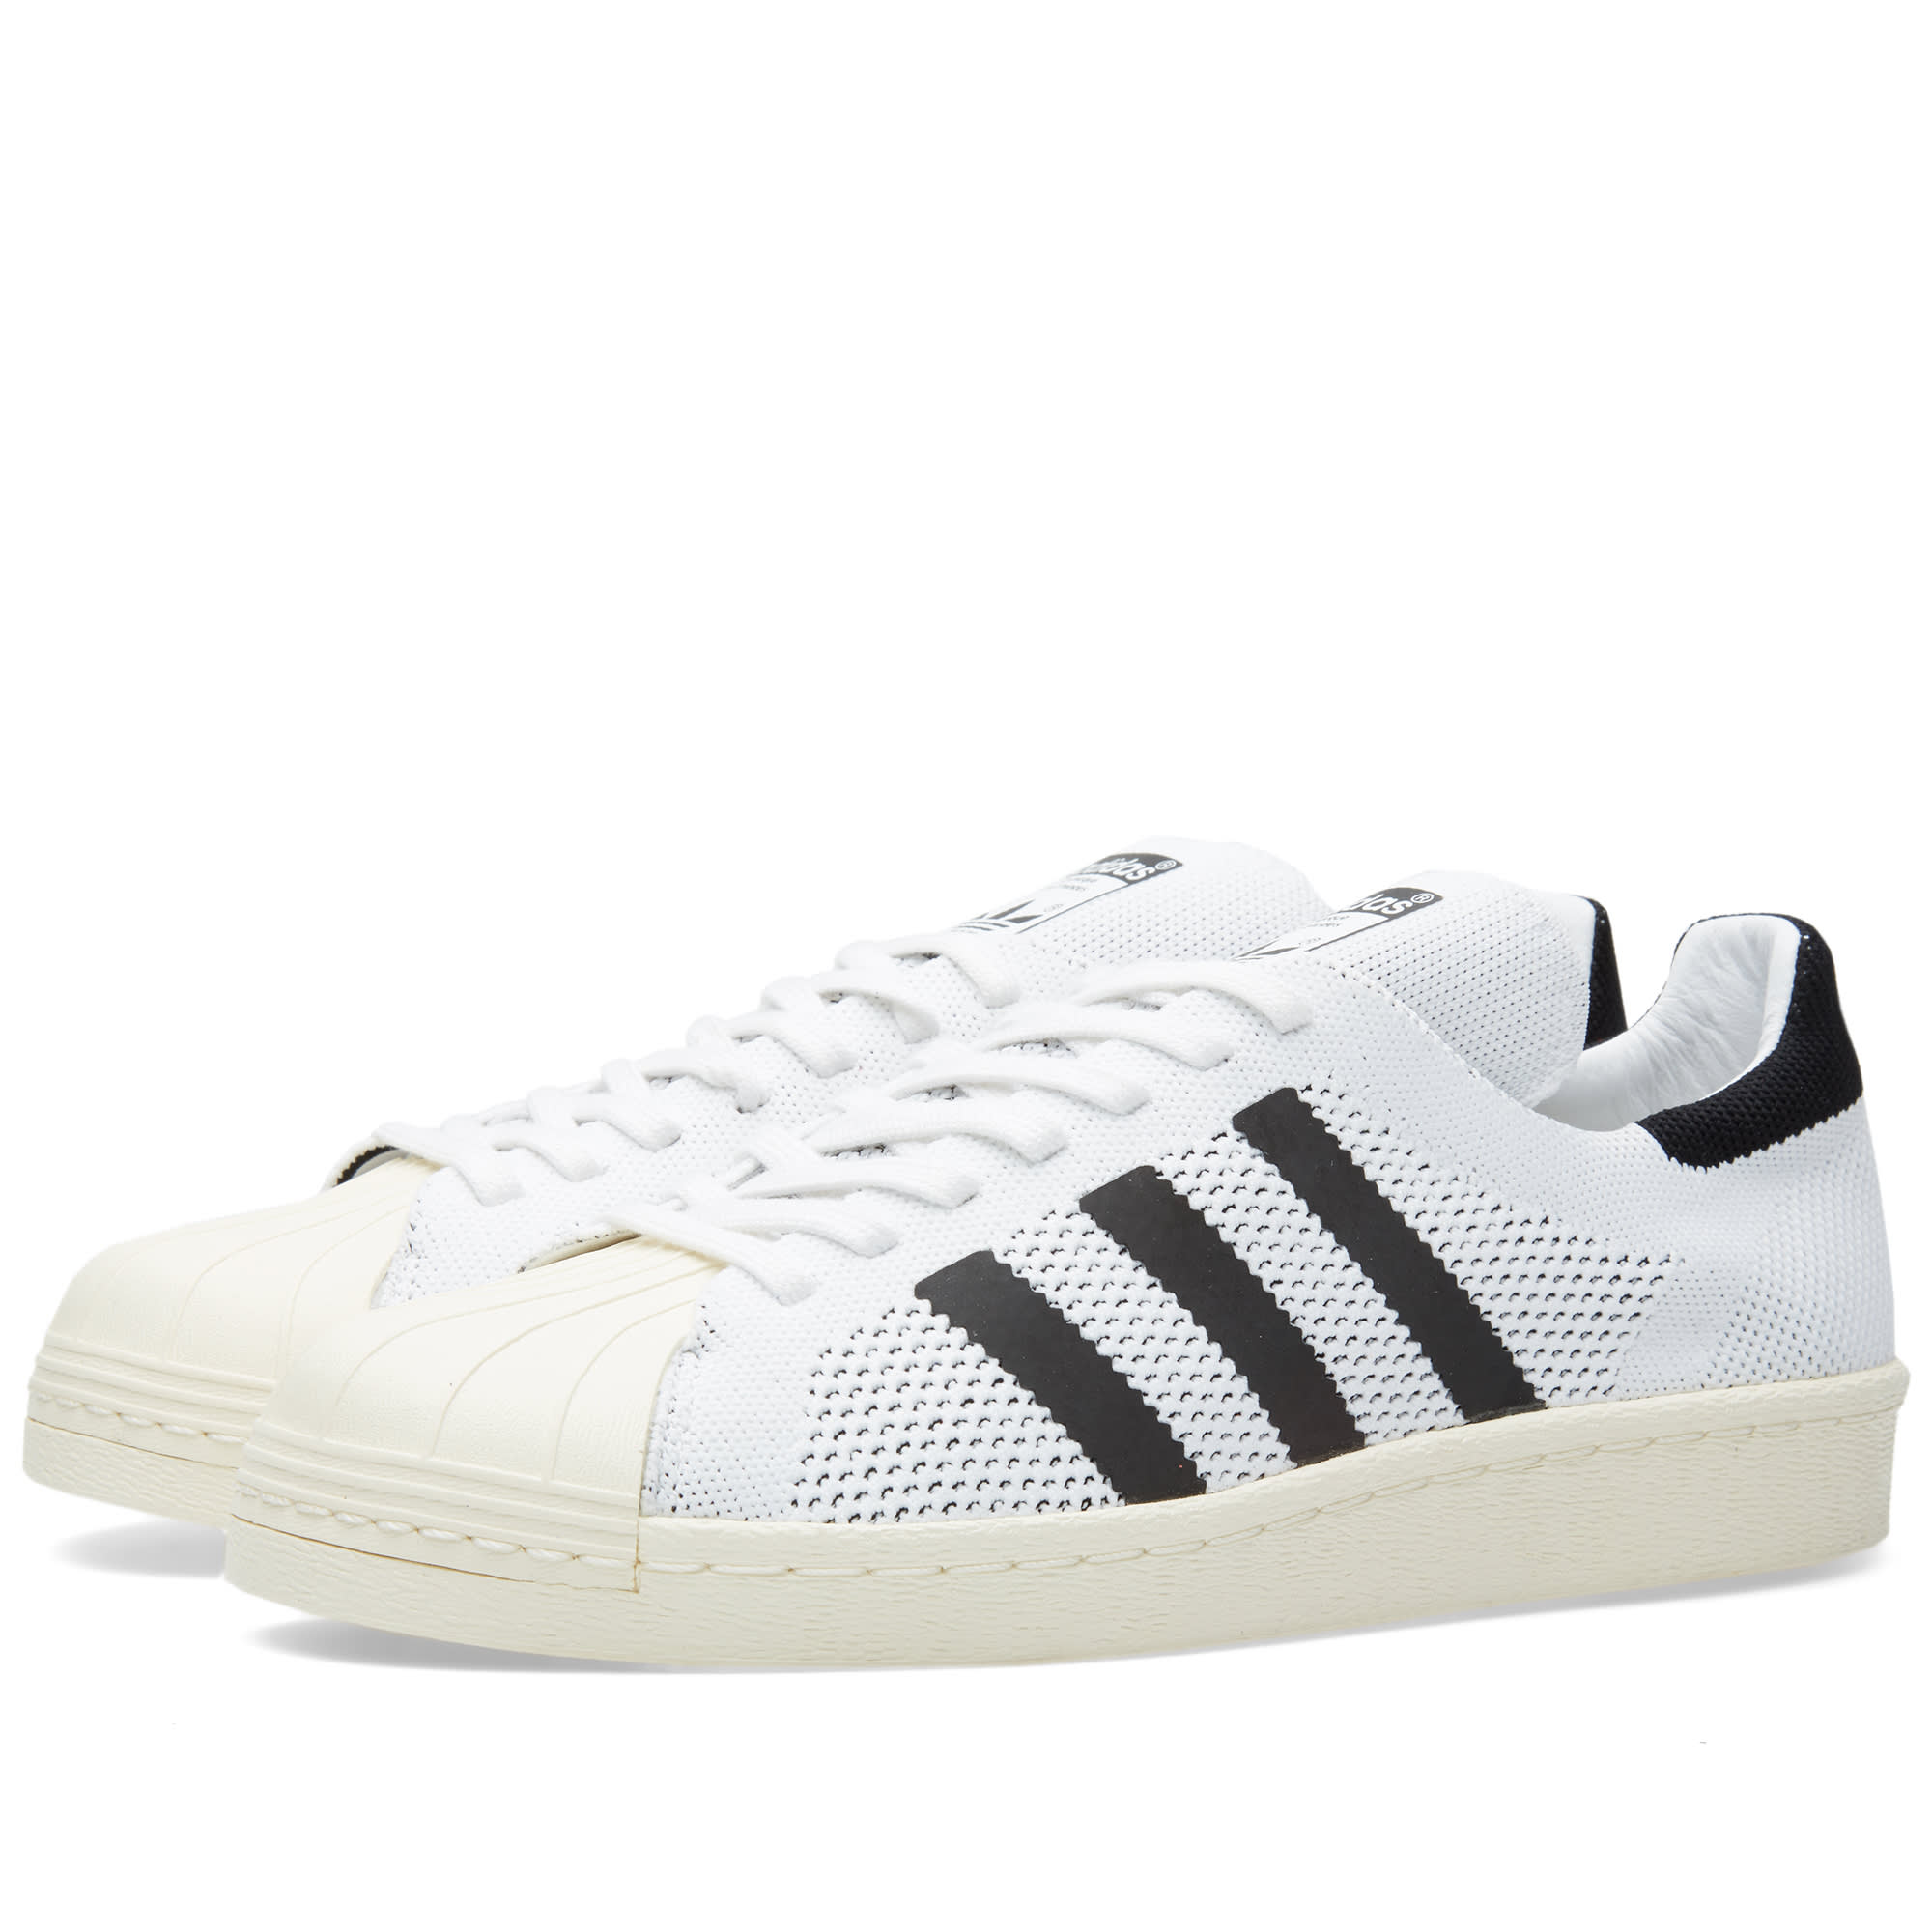 official photos 91ec2 f7cee Adidas Superstar 80s Primeknit White   Core Black   END.